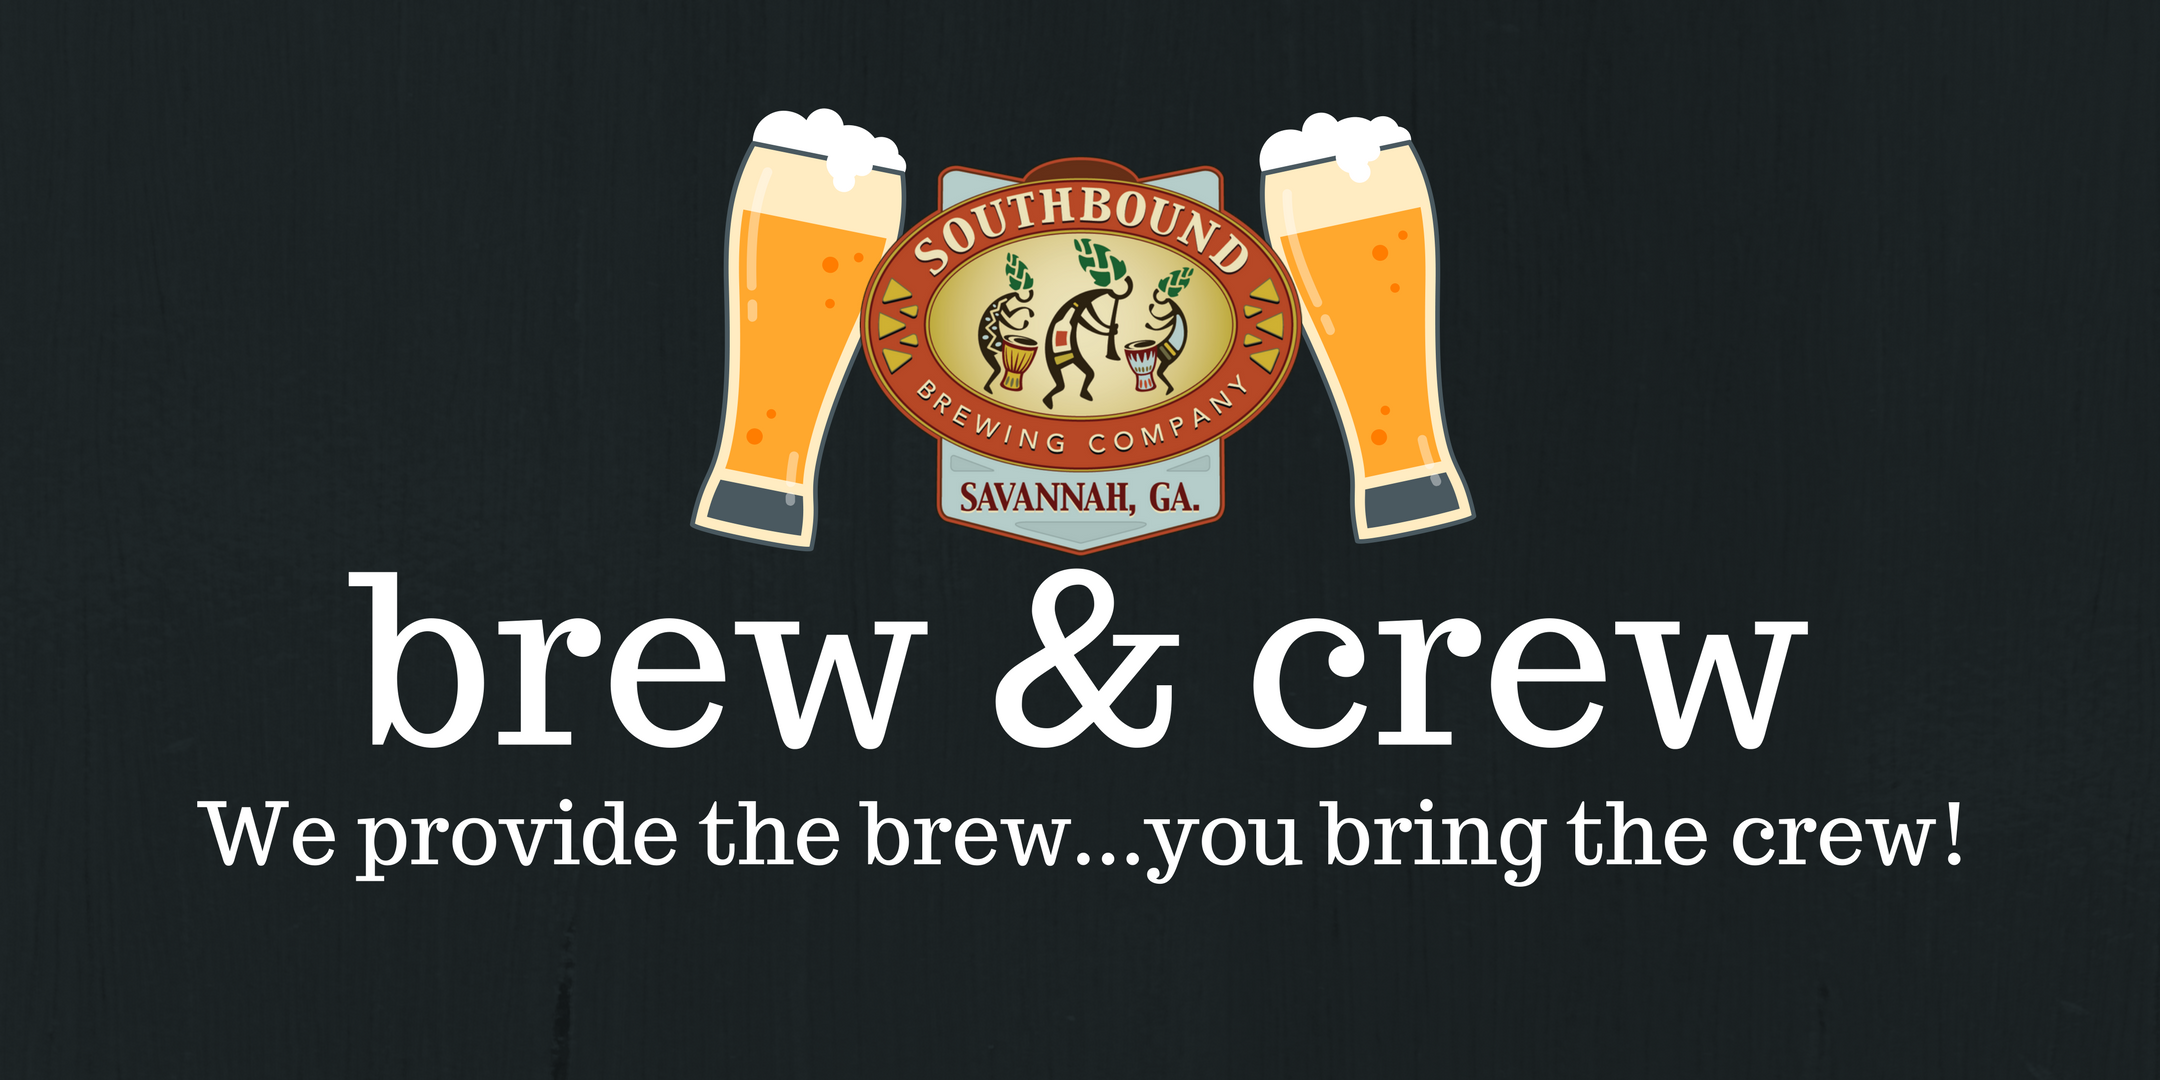 Brew and Crew: We provide the brew. You bring the crew.